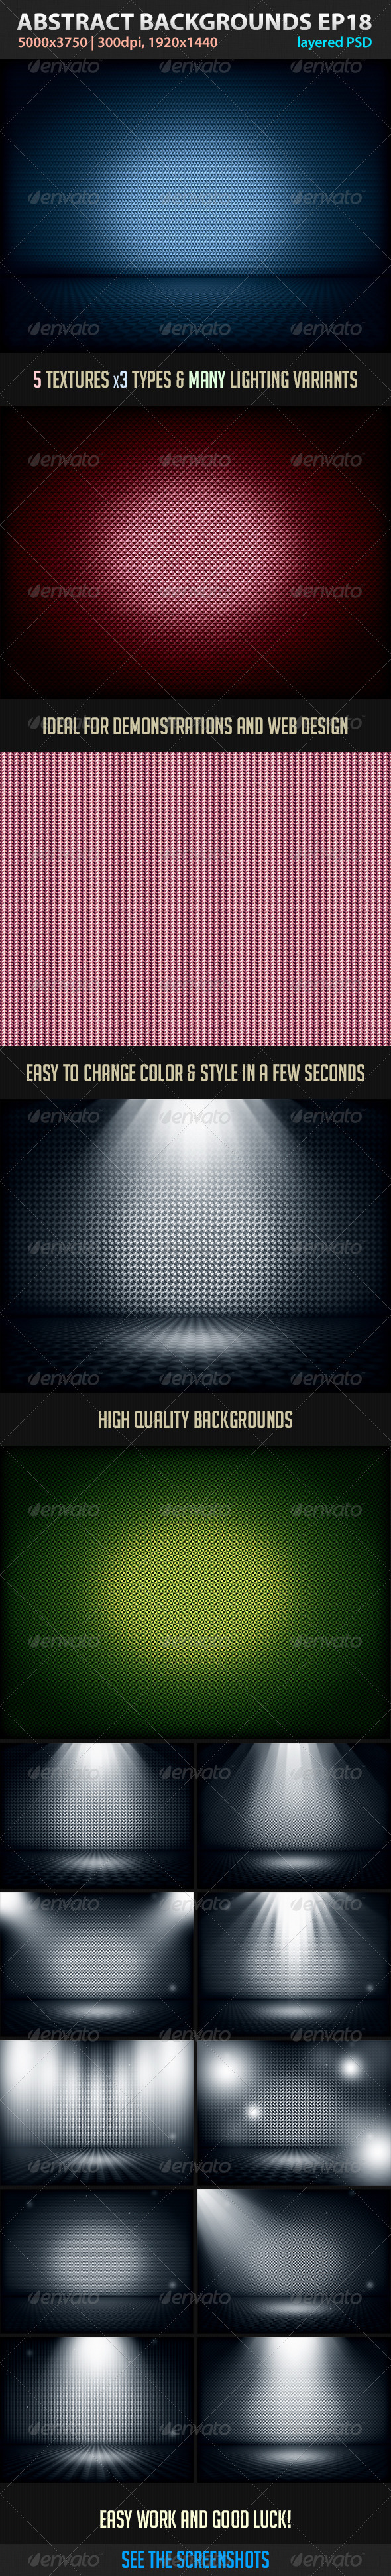 GraphicRiver Absctract Backgrounds EP 18 3541253